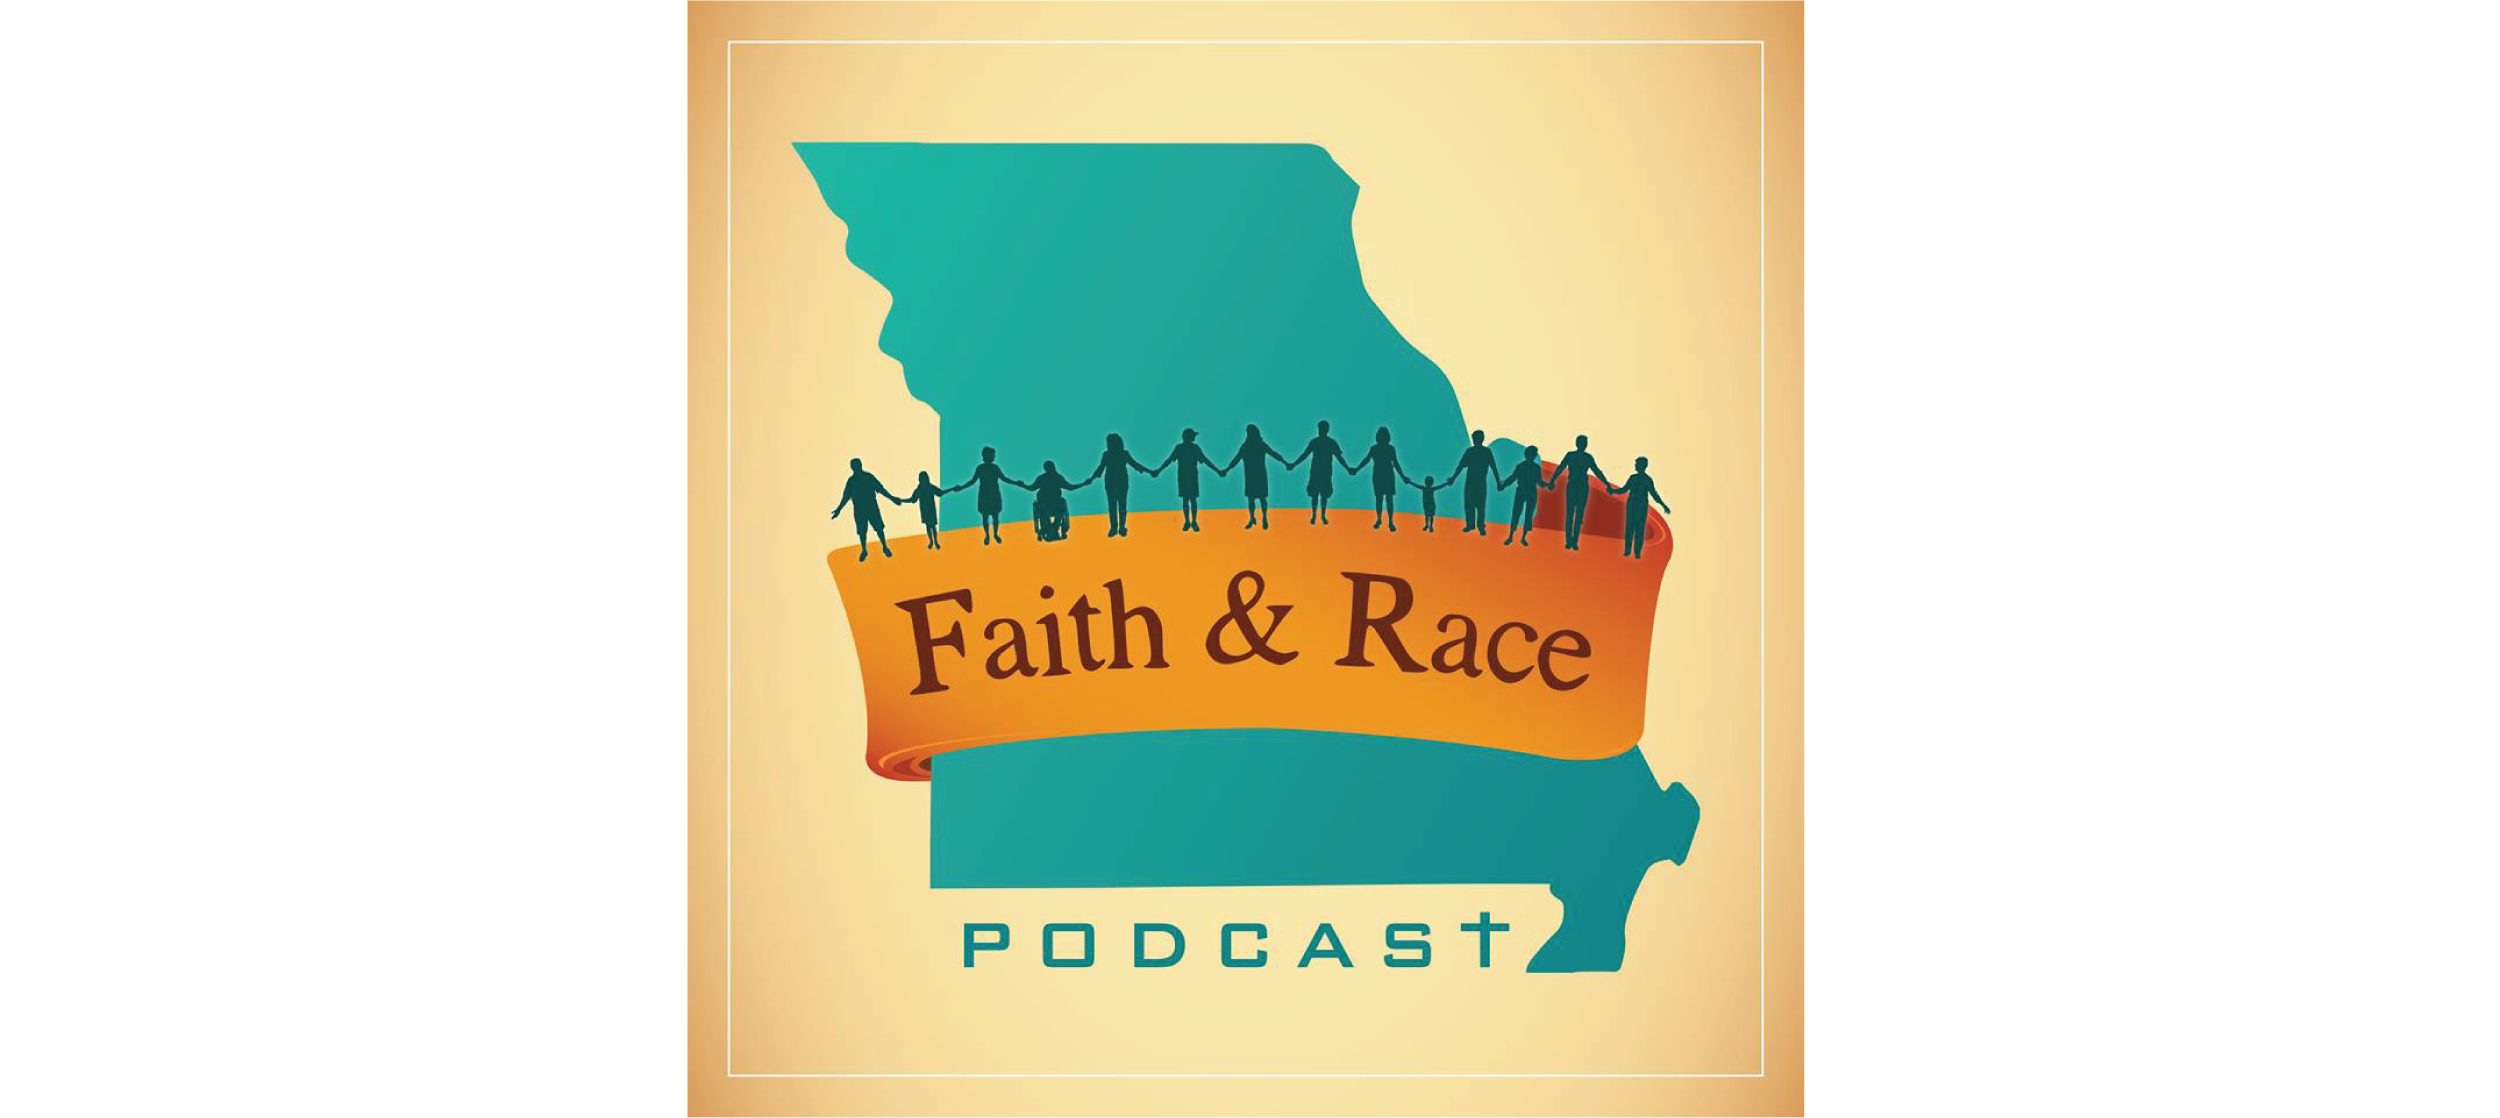 https://www.moumethodist.org/faithandracepodcast